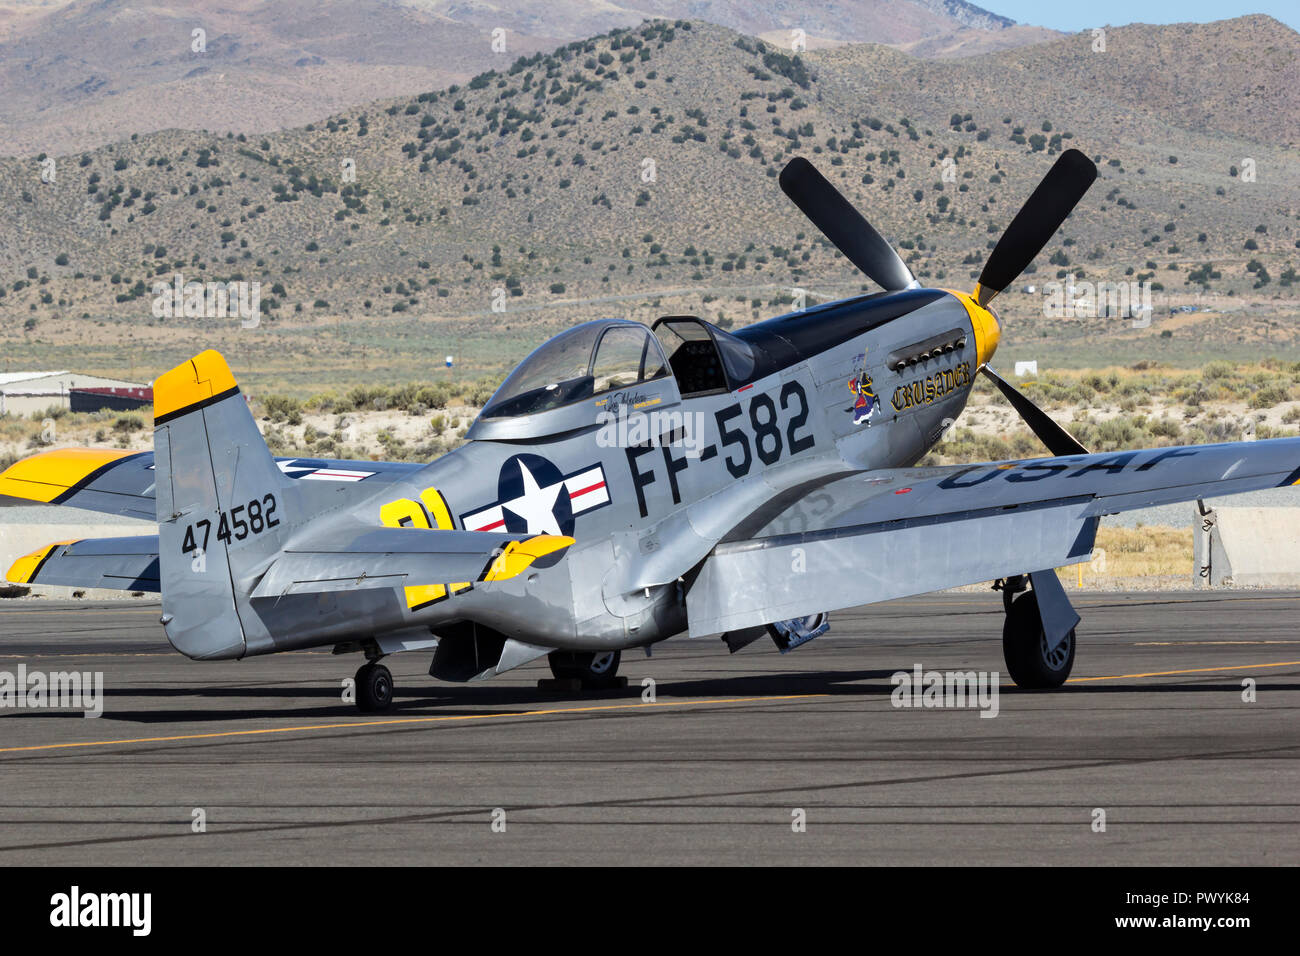 P-51 Mustang and Unlimited Air Racer 'Crusader' sits on the ramp prior to a heat race during the 2018 Reno National Championship Air Races. - Stock Image